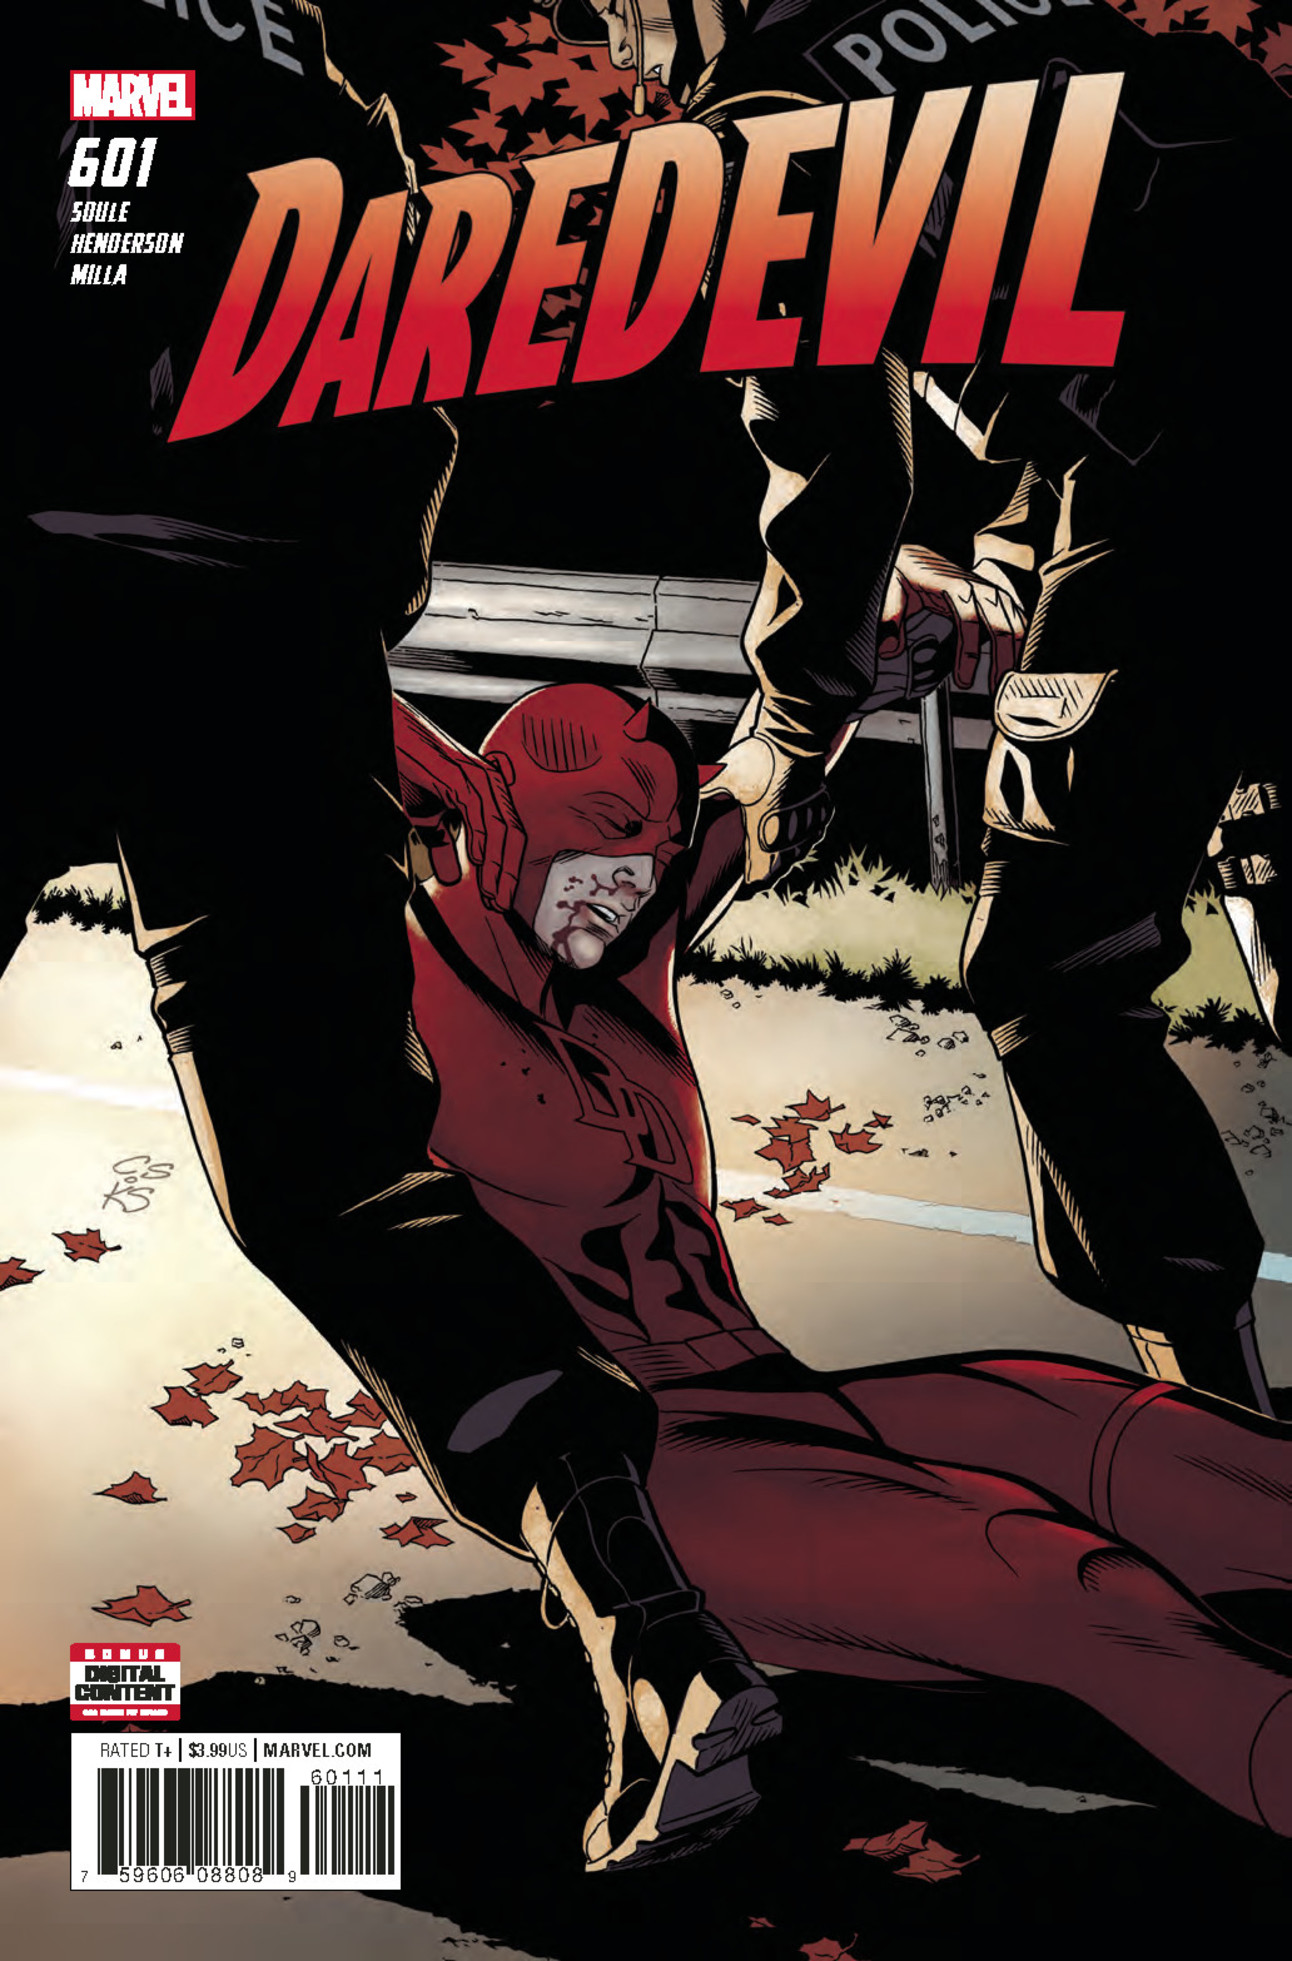 Daredevil #601 Cover by Chris Sprouse